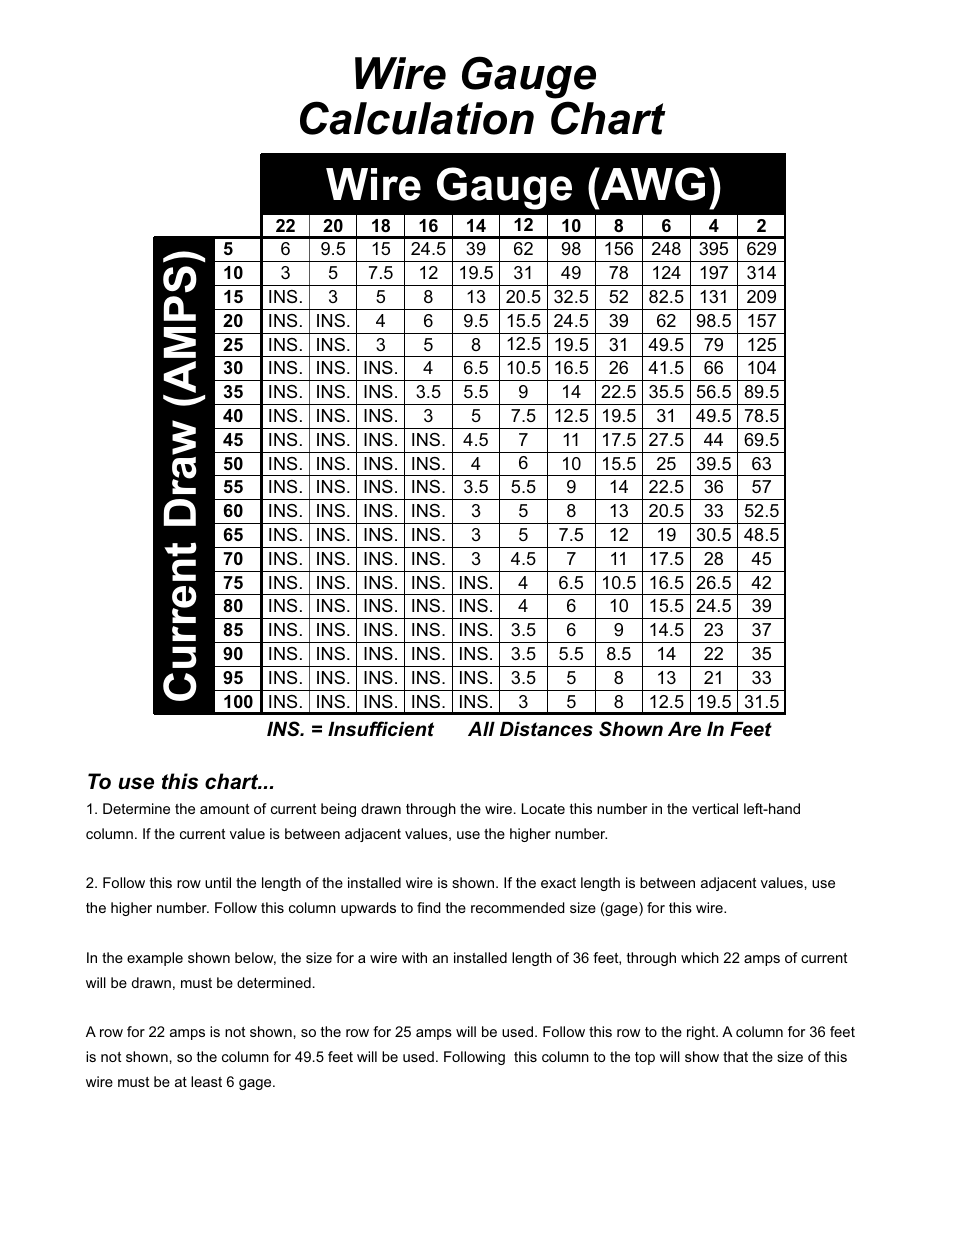 current draw amps wire gauge calculation chart wire gauge awg rh manualsdir com